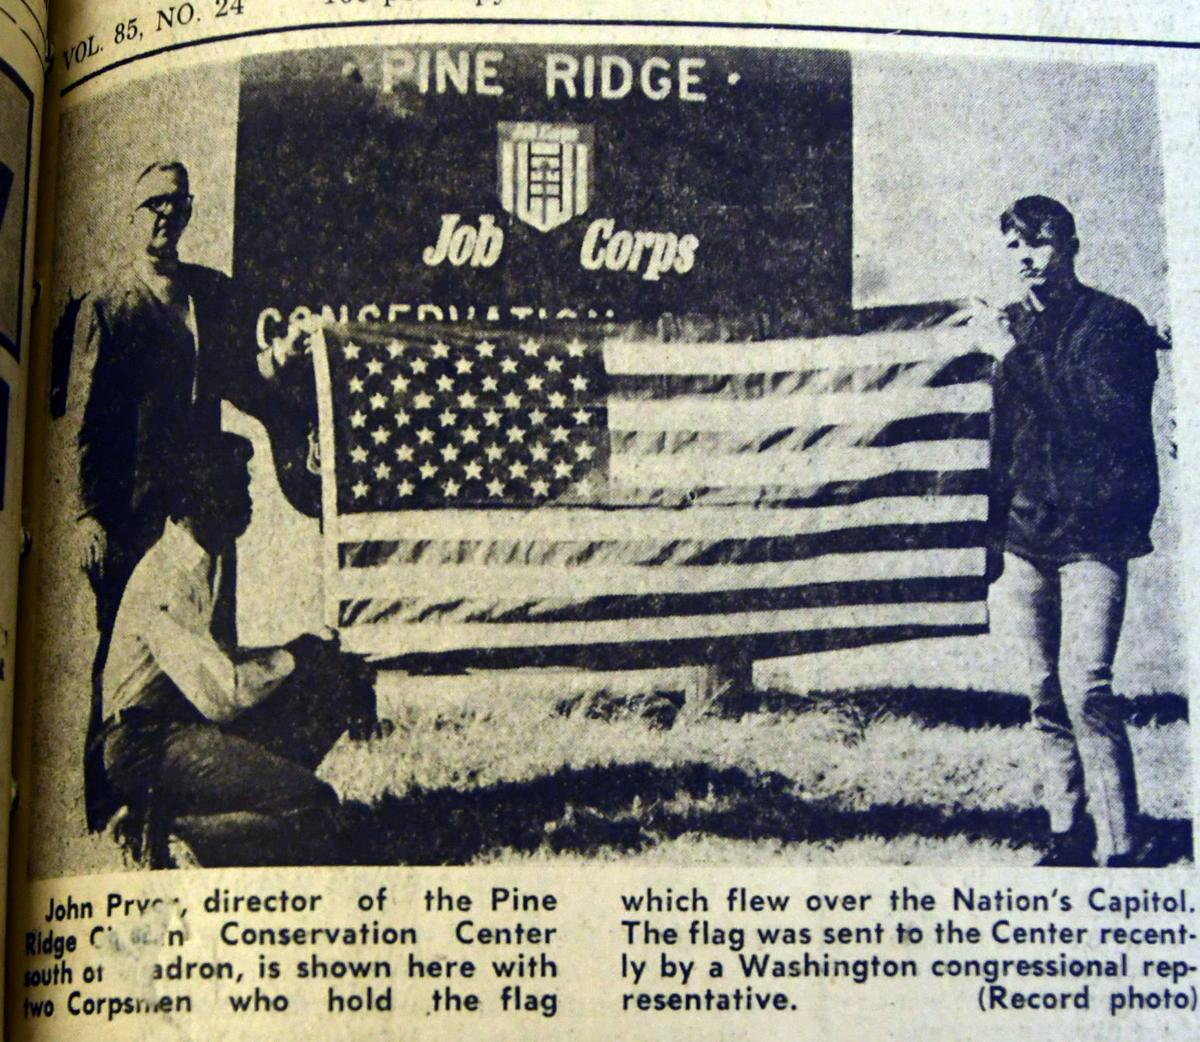 Corpsmen Receive Flag Which Flew Over Capital